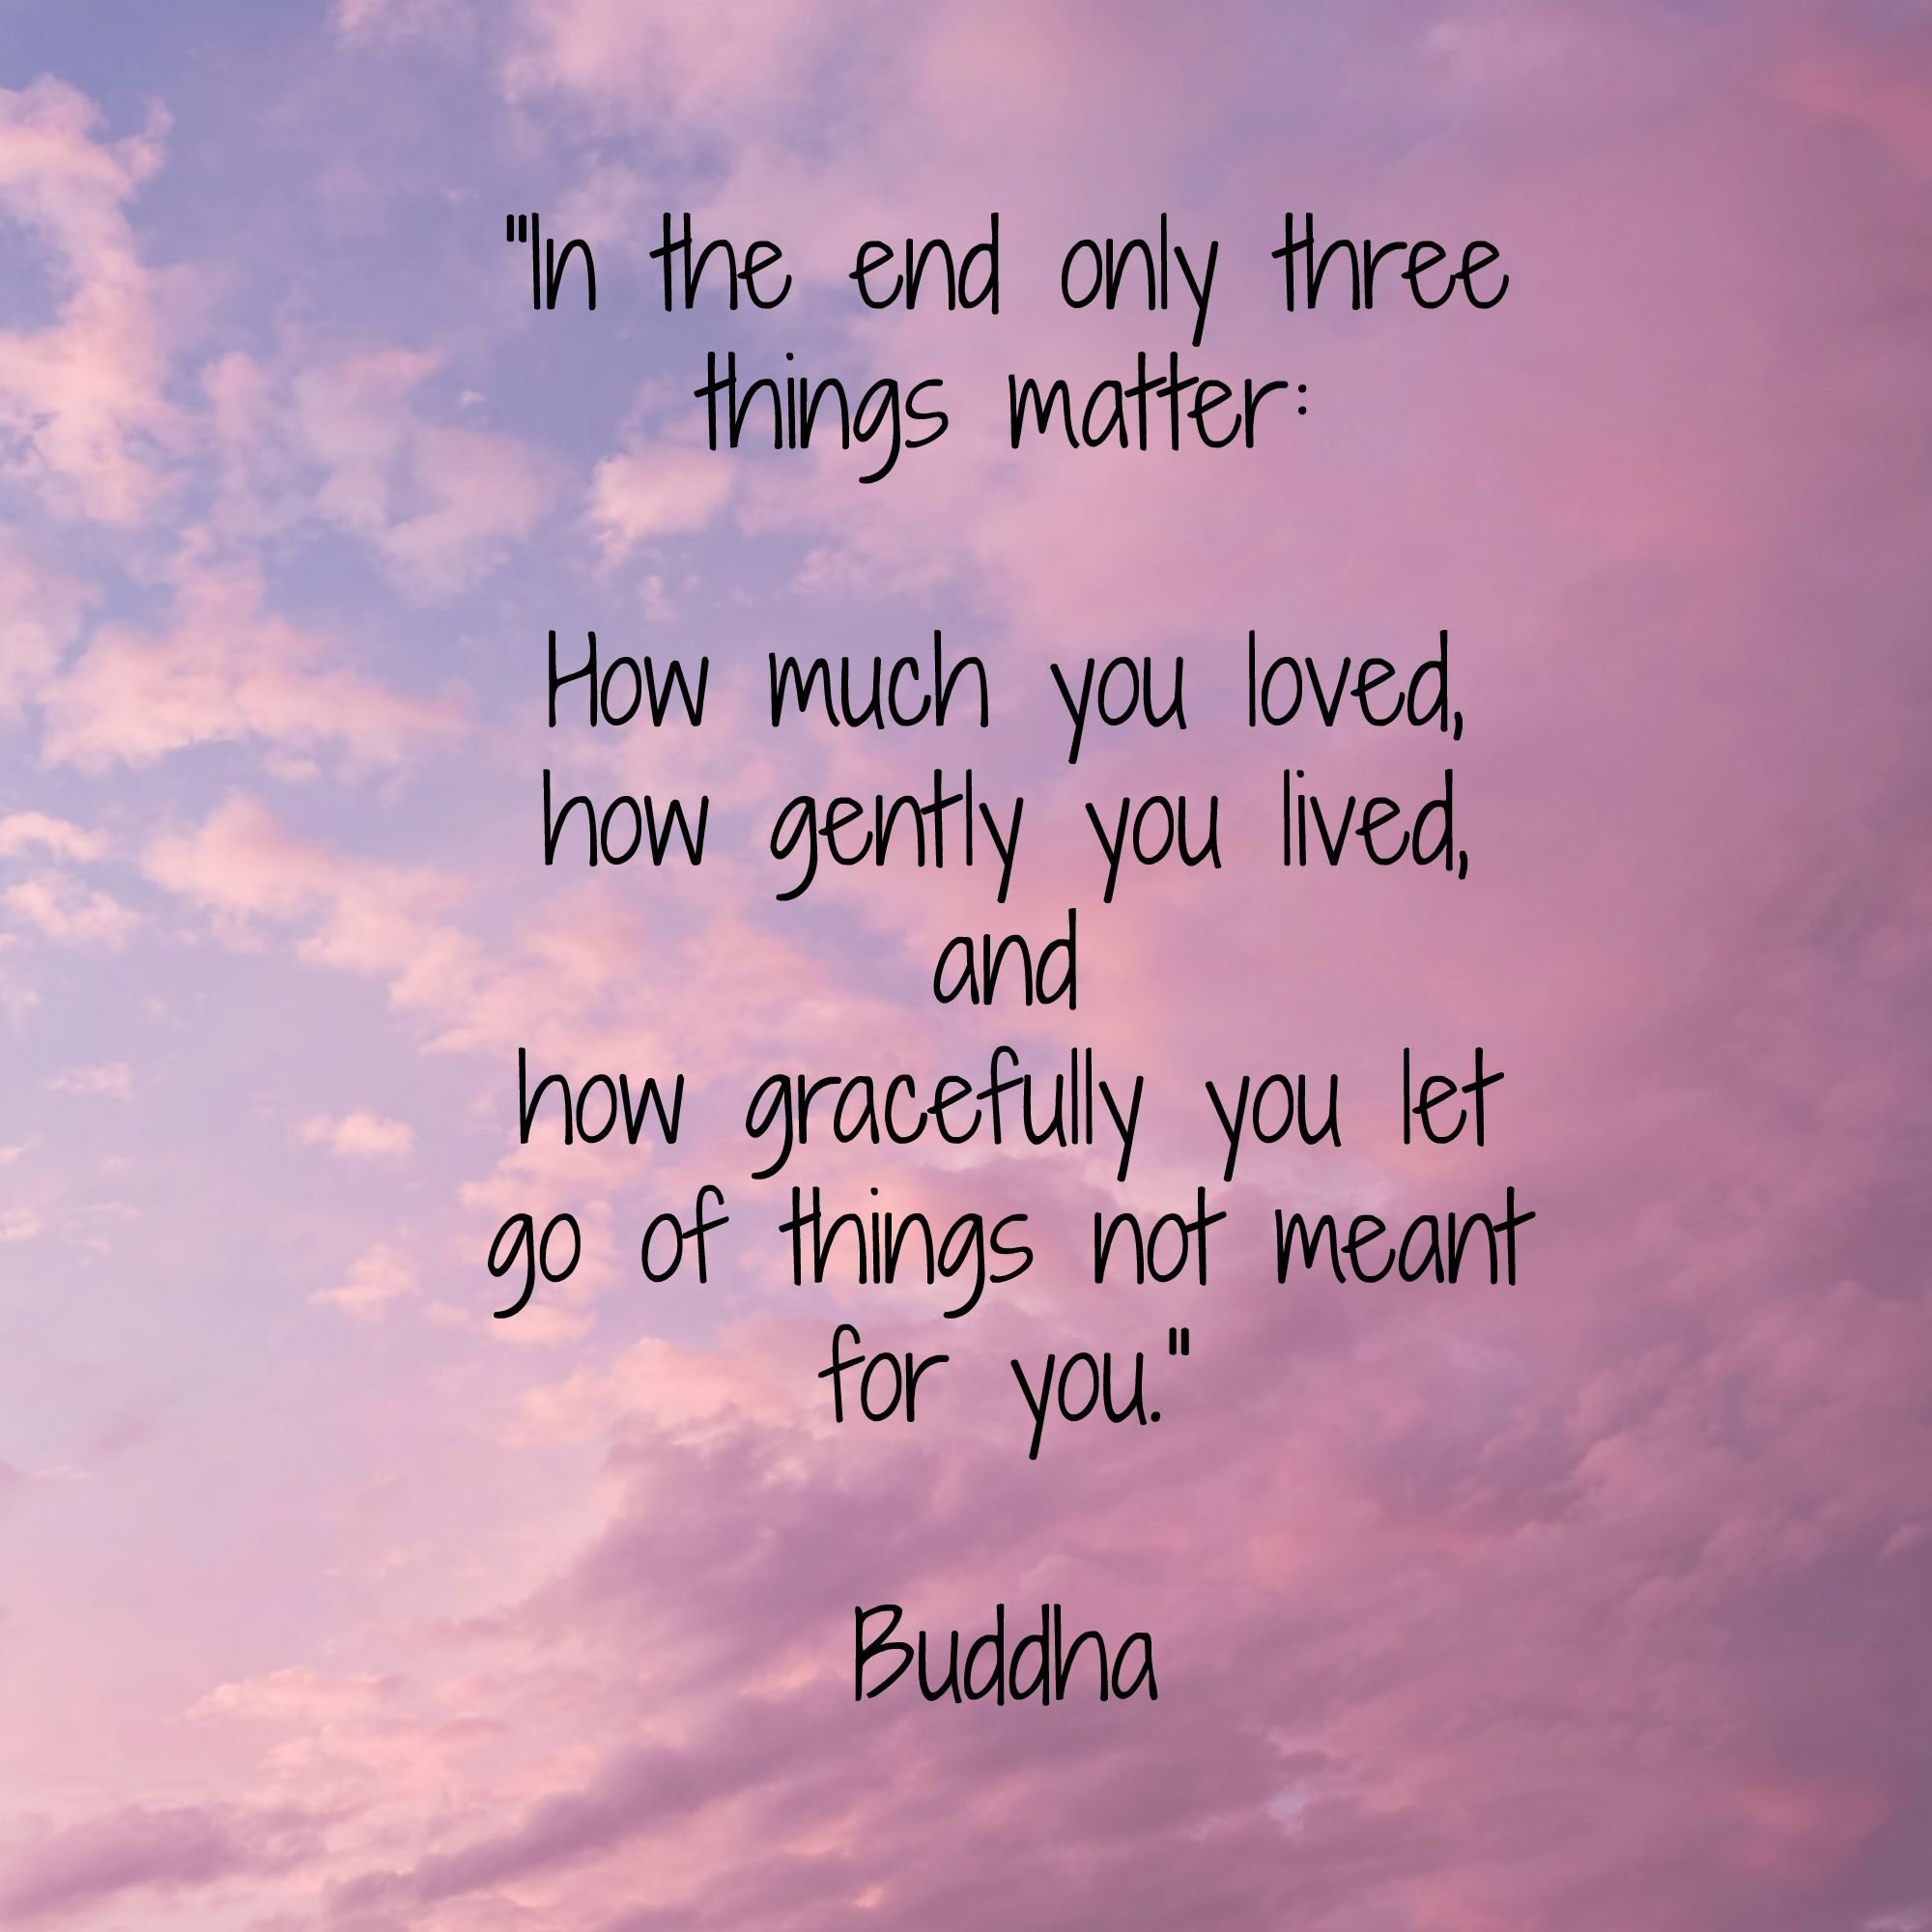 Buddhist Quotes On Love Buddha Quote  Zen  Pinterest  Buddha Quote Buddha And Buddhism